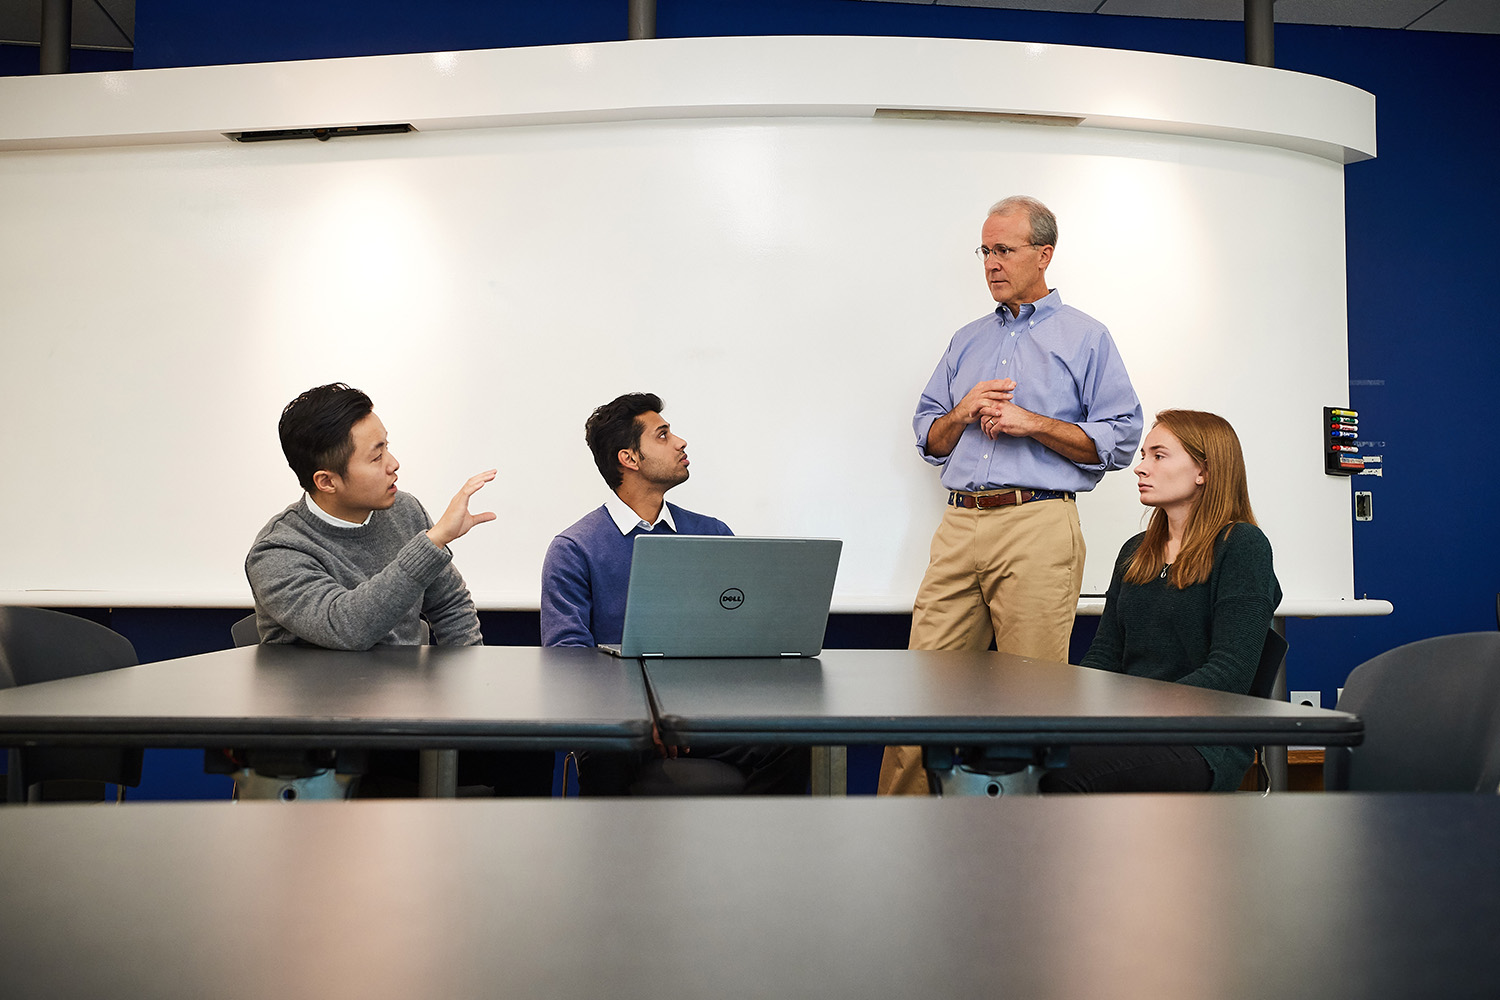 Former Goldman Sachs partner Blake Mather, advisor to a new Student Managed Fund at UConn Stamford, meets with student managed fund members Di Yang, left, Anshul Manglani, both graduate students, and Lindsey Lozyniak '19 (BUS). (Peter Morenus/UConn Photo)